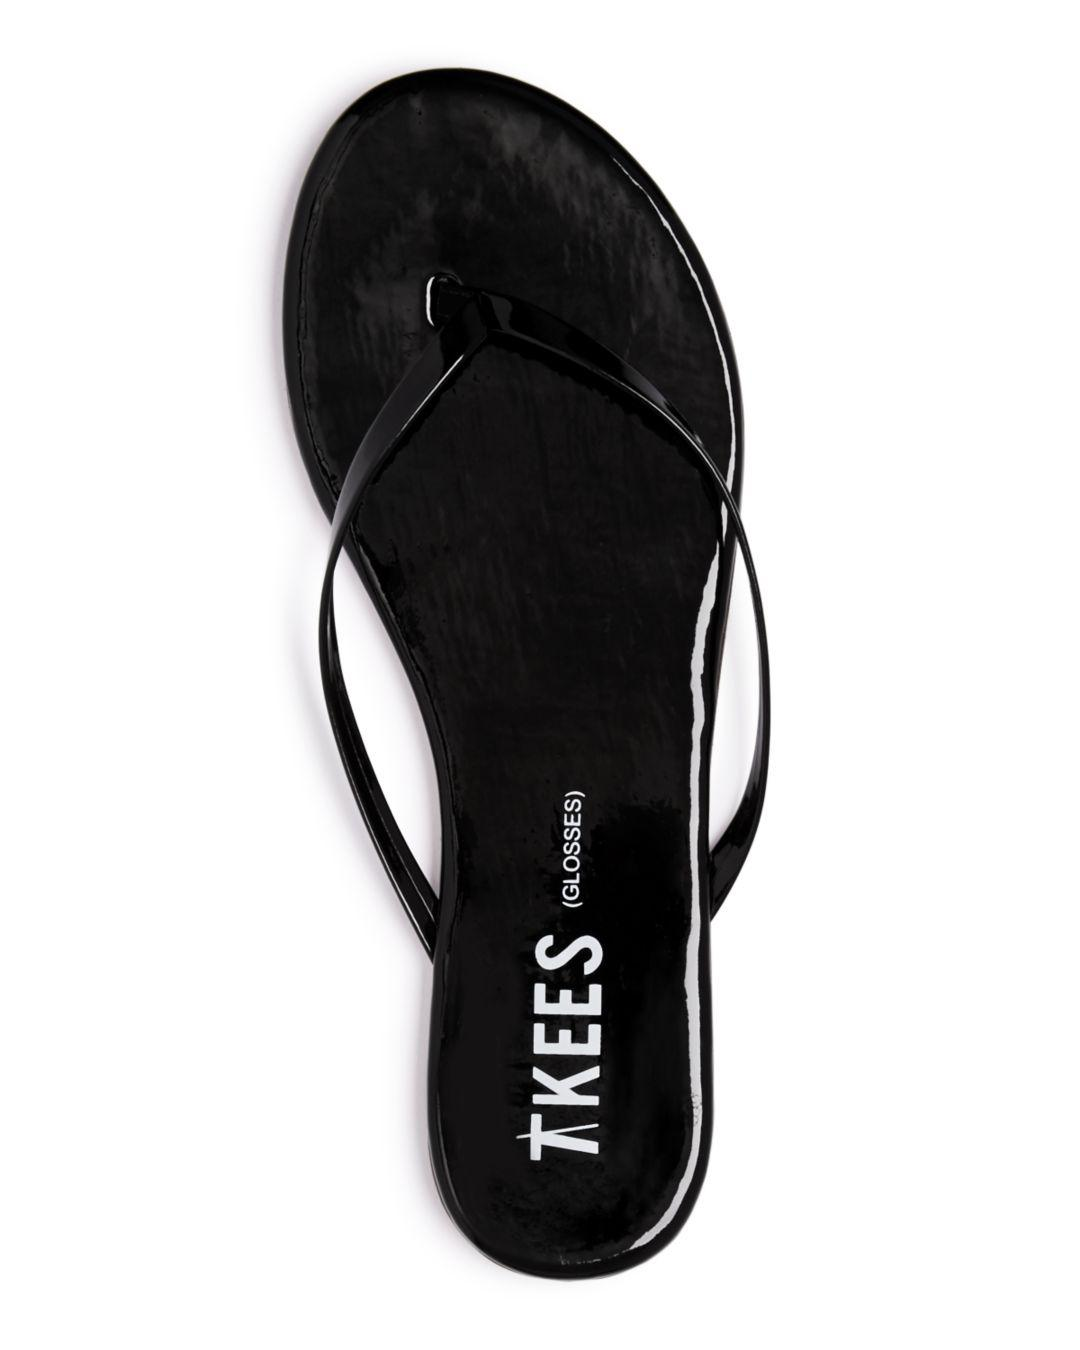 a461ec4d94ecb Lyst - TKEES Women's Glosses Patent Leather Flip-flops in Black - Save 40%